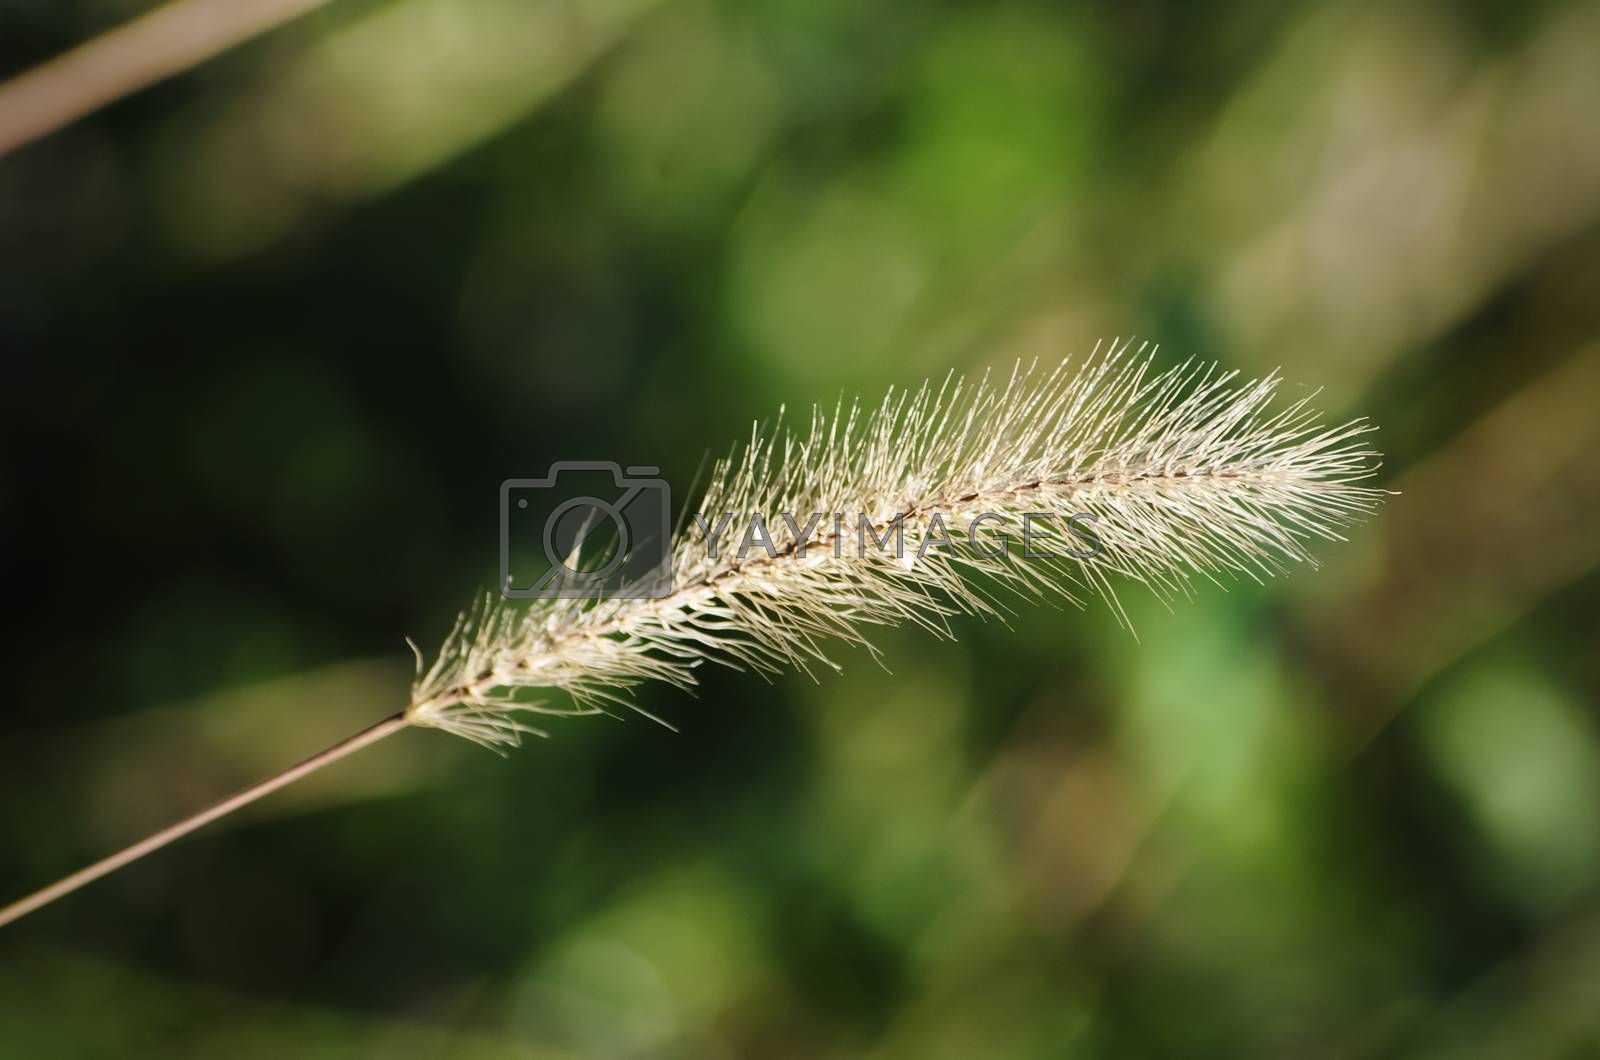 Dry Plant Over Natural Green  Background